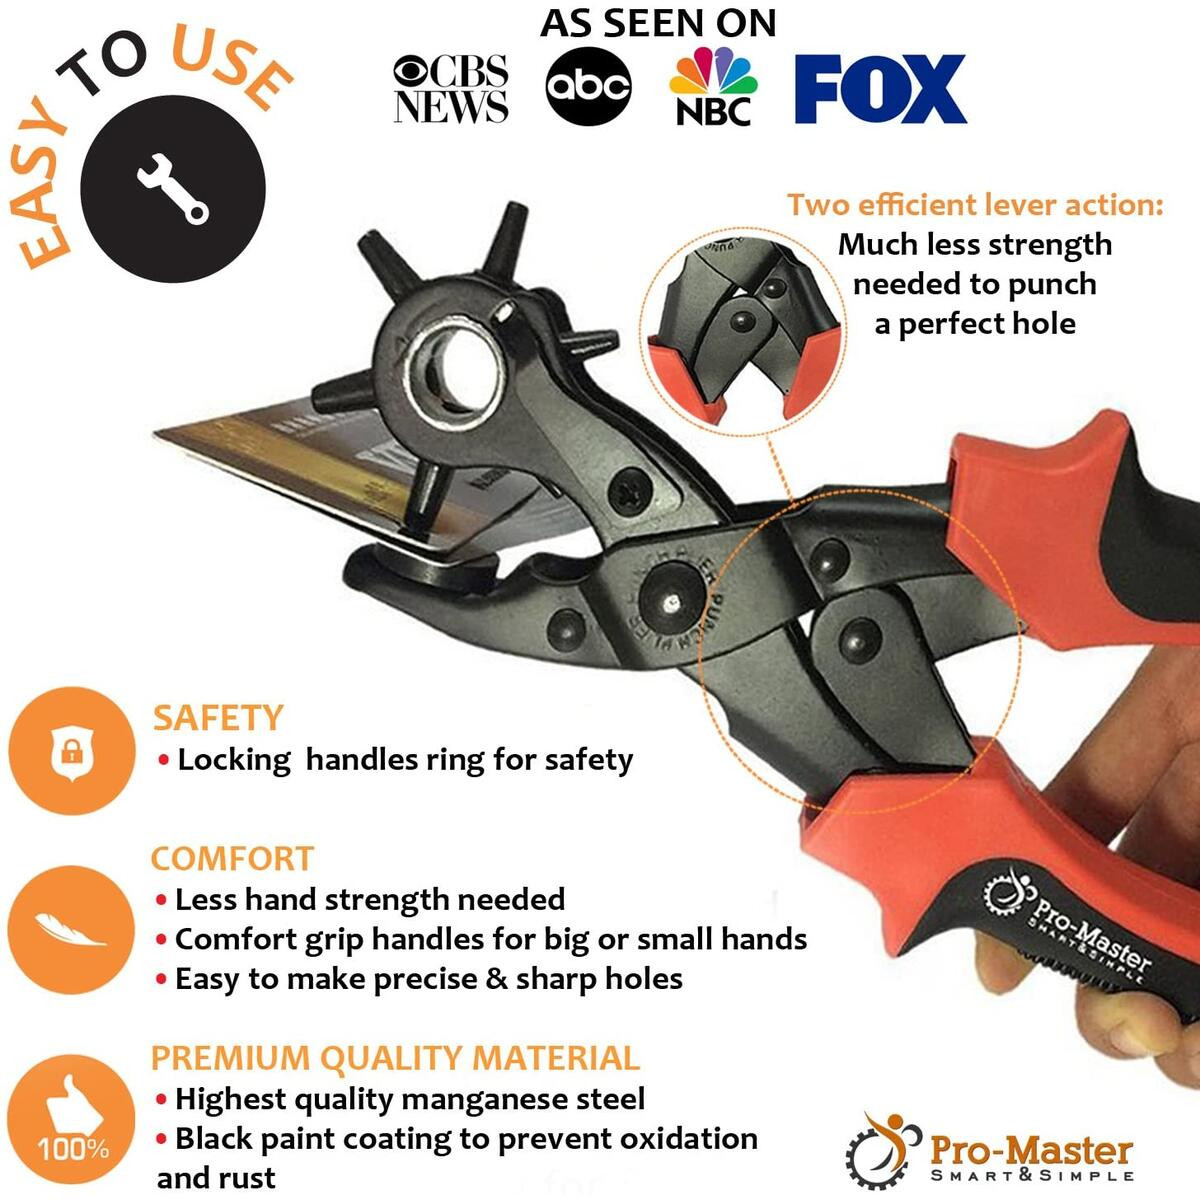 Leather Hole Punch Set for Belts, Watch Bands, Straps, Dog Collars, Saddles, Shoes, Fabric, DIY Home or Craft Projects. Super Heavy Duty Rotary Puncher, Multi Hole Sizes Maker Tool